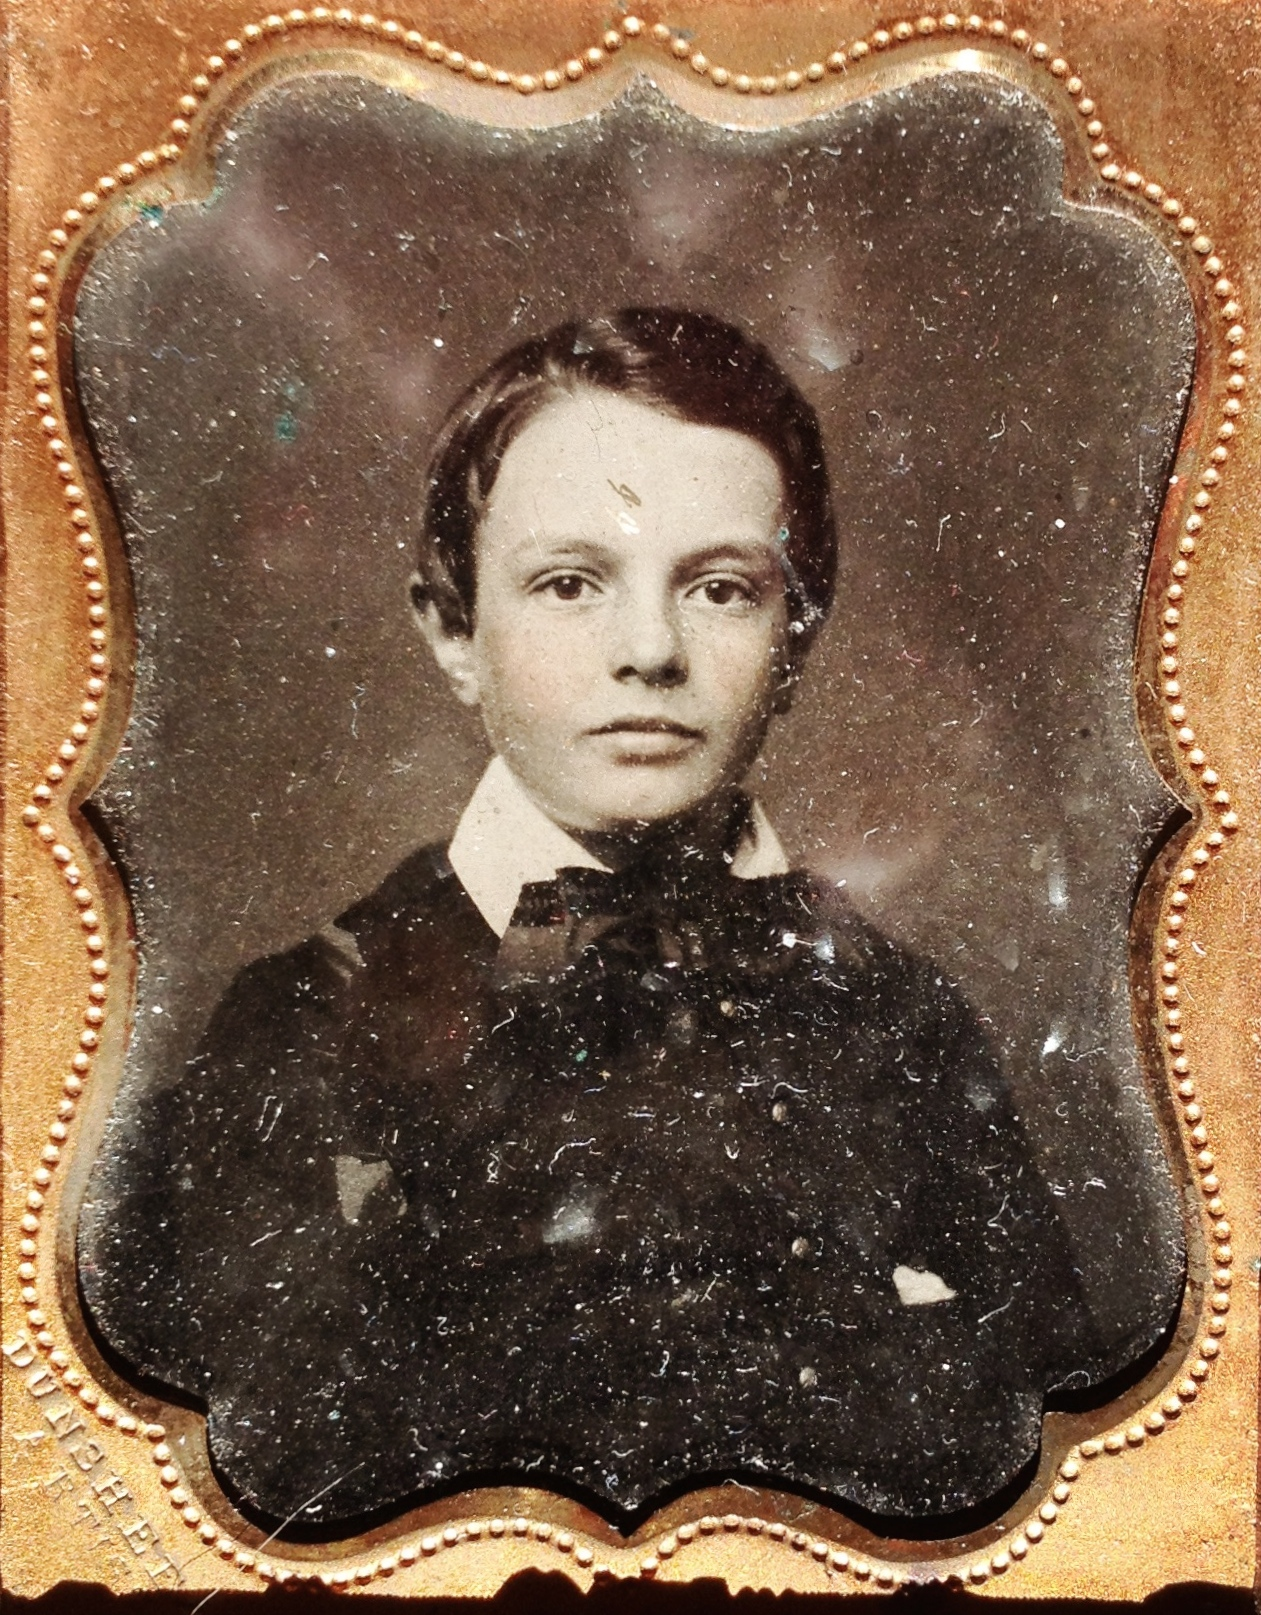 Leland Thankful Smith, 16 May, 1863